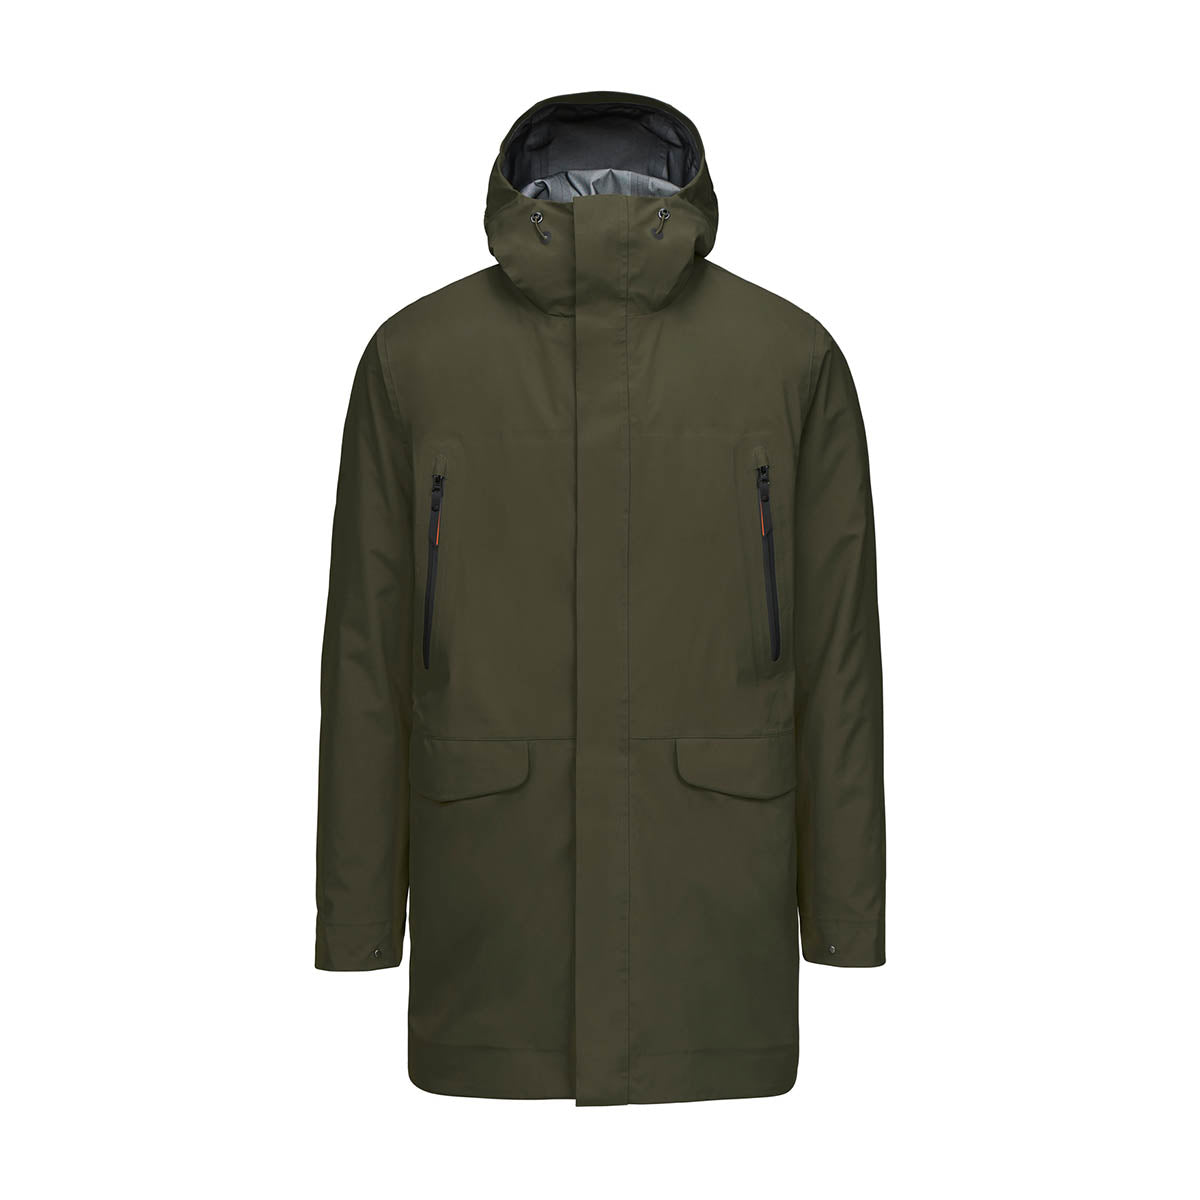 Zürich II Parka - background::white,variant::Dark Pine